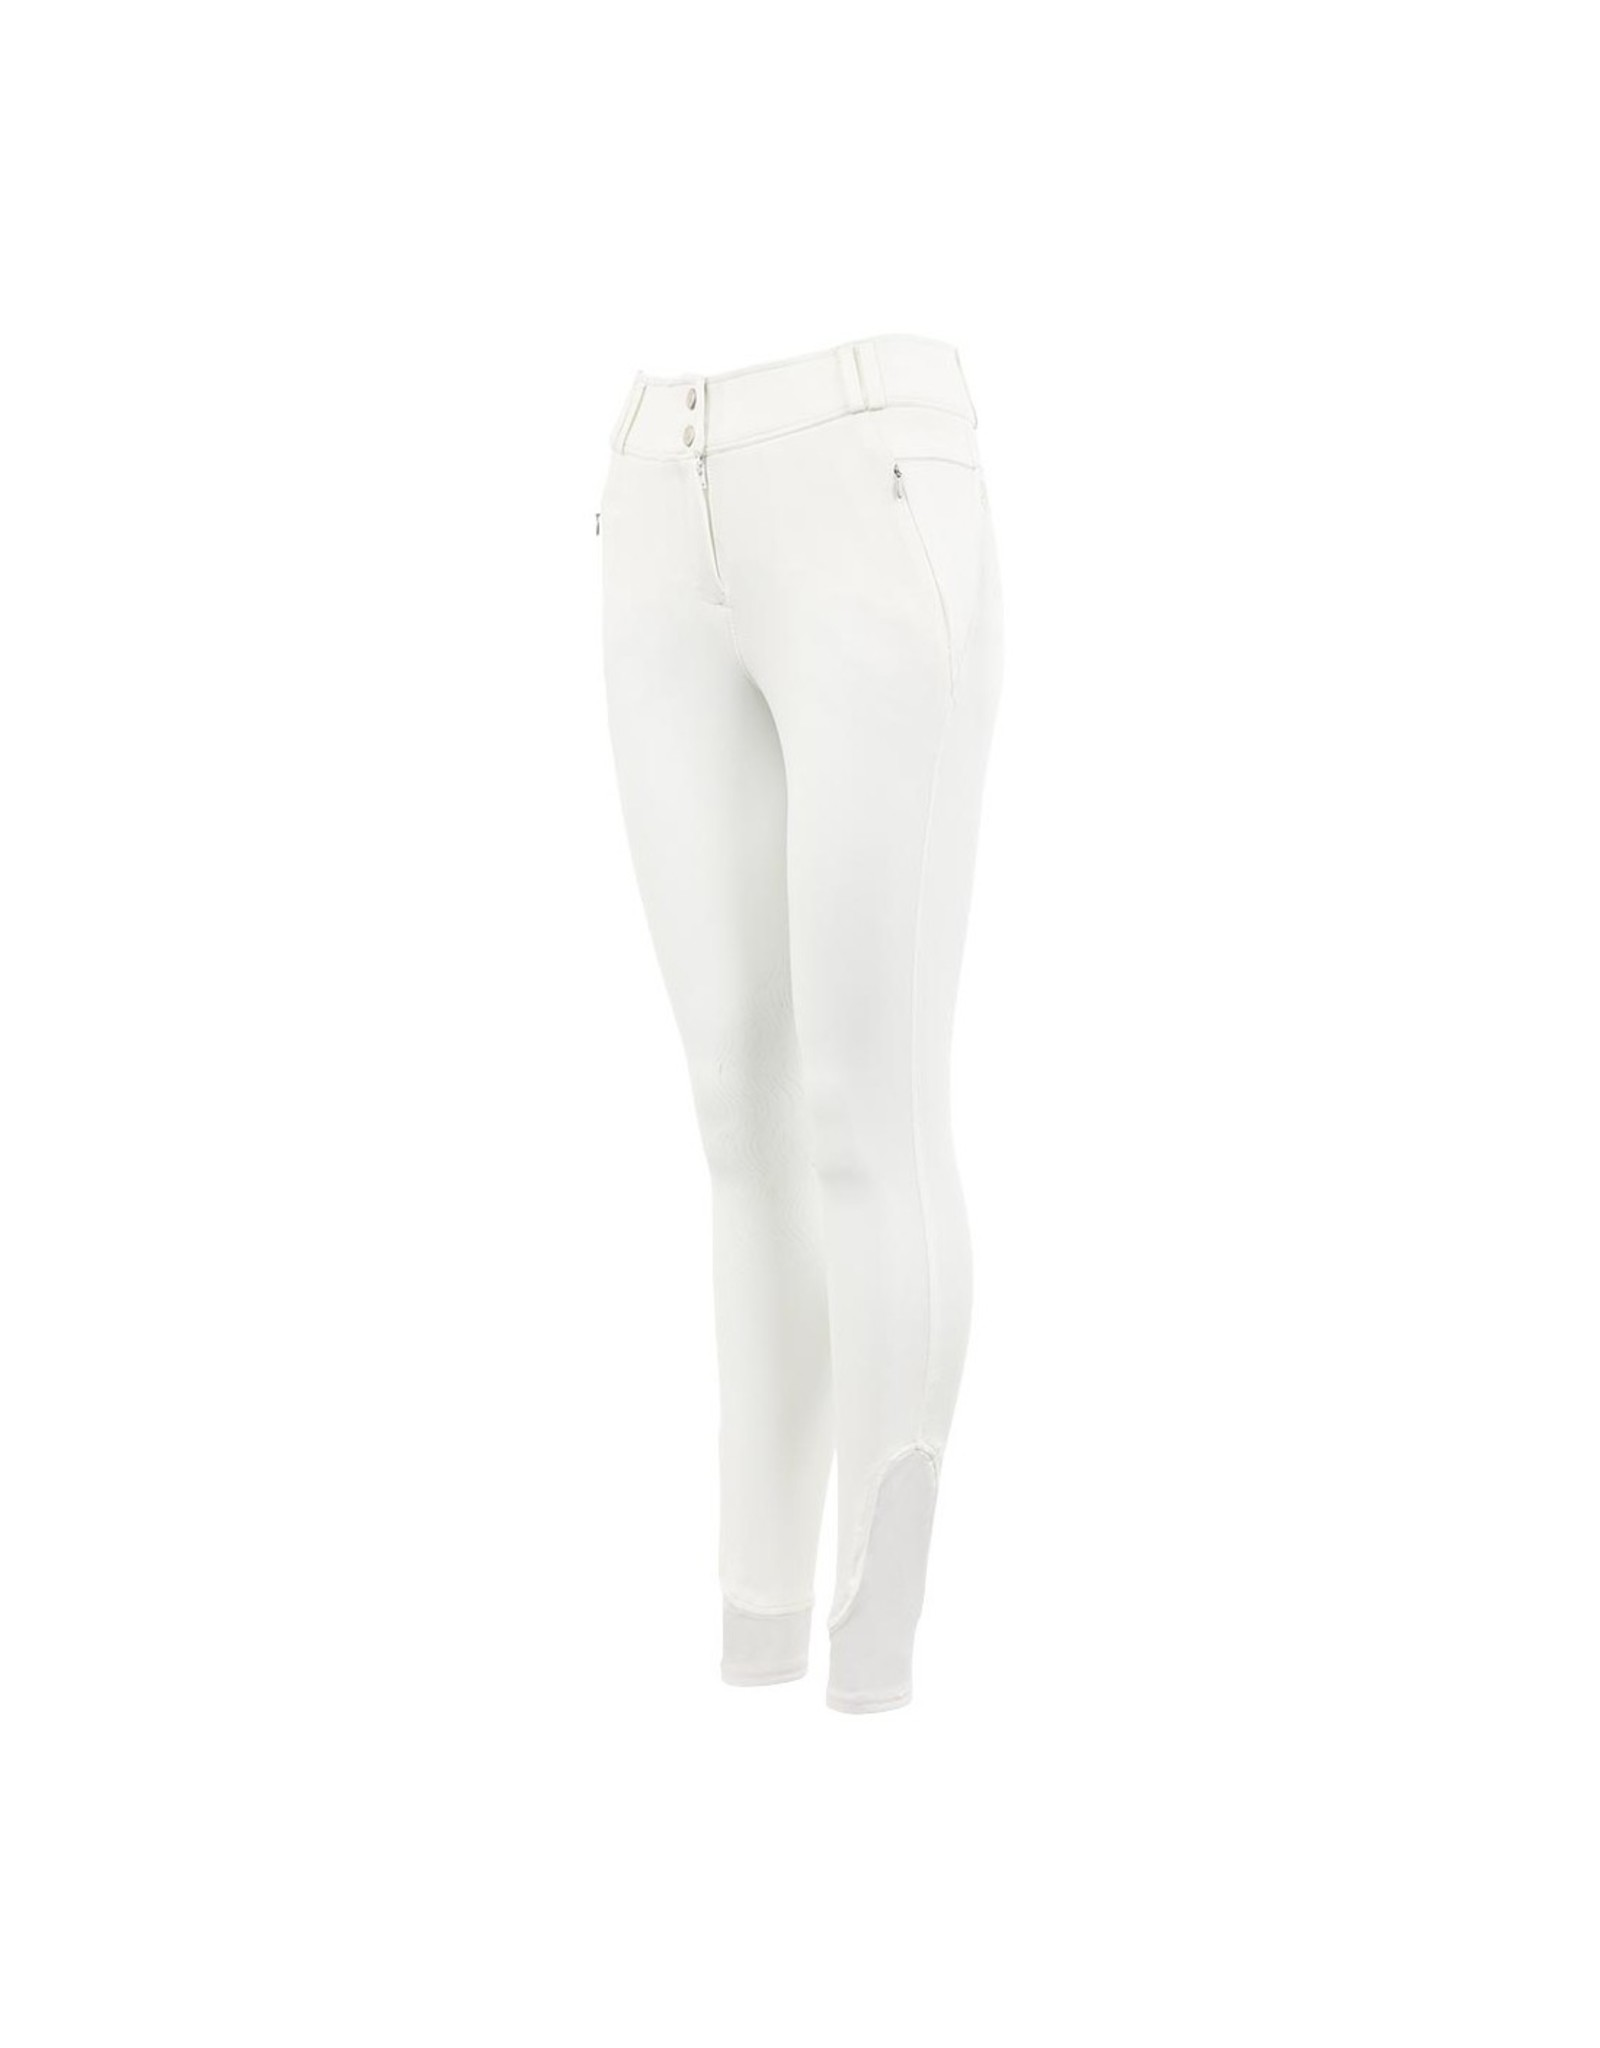 BR RUNE SILICONE KNEE PATCH BREECHES